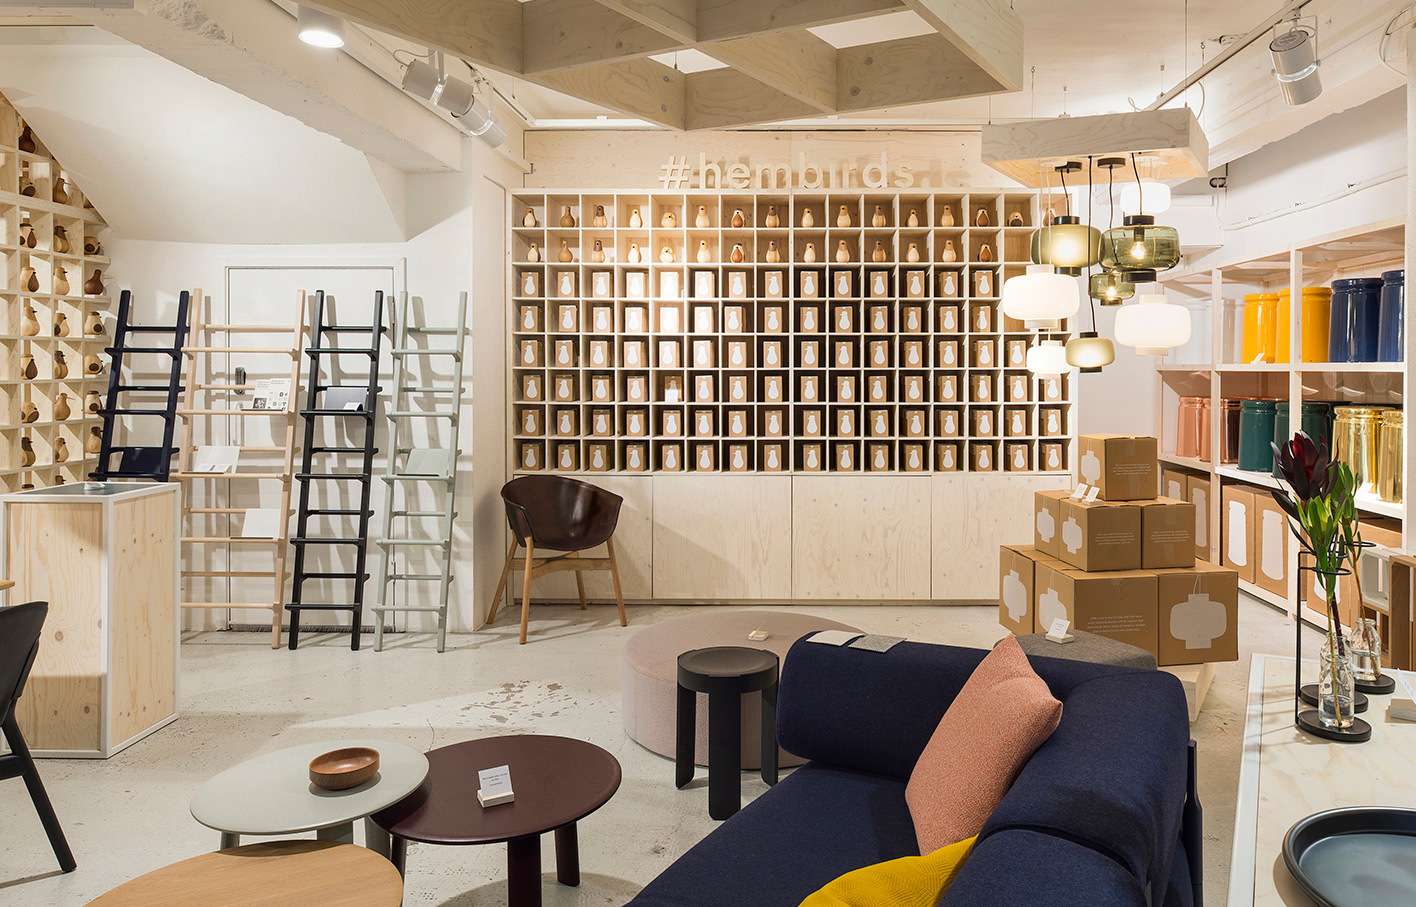 Aldworthjamesandbond Hem Single01